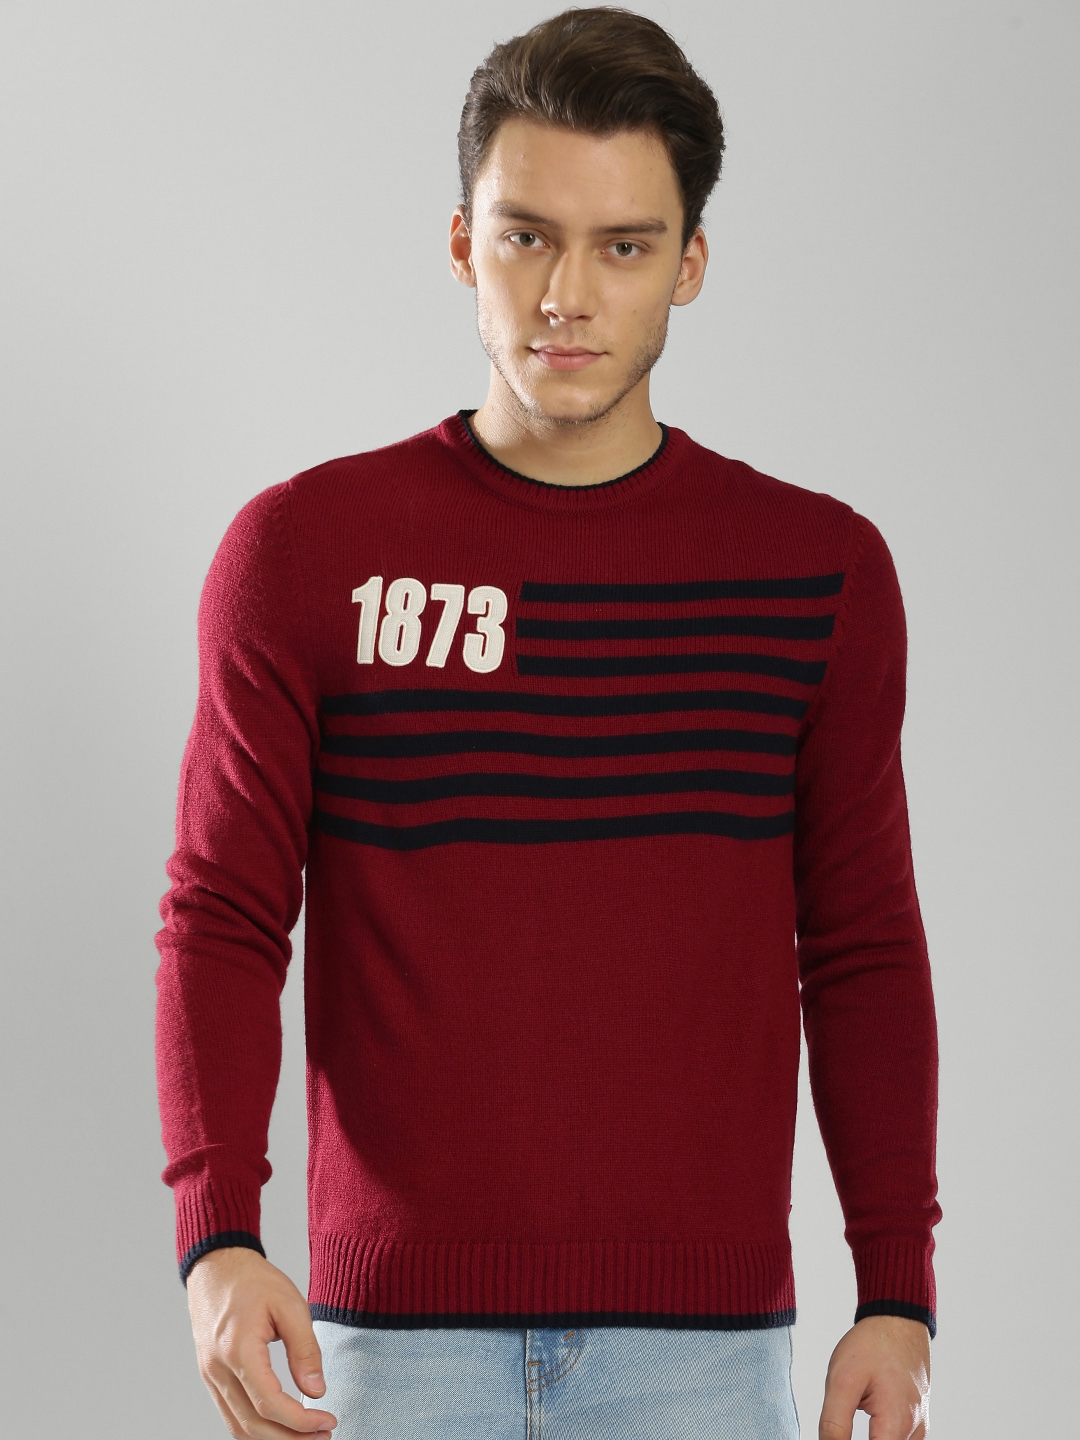 Levis Sweaters - Buy Levis Sweaters Online in India